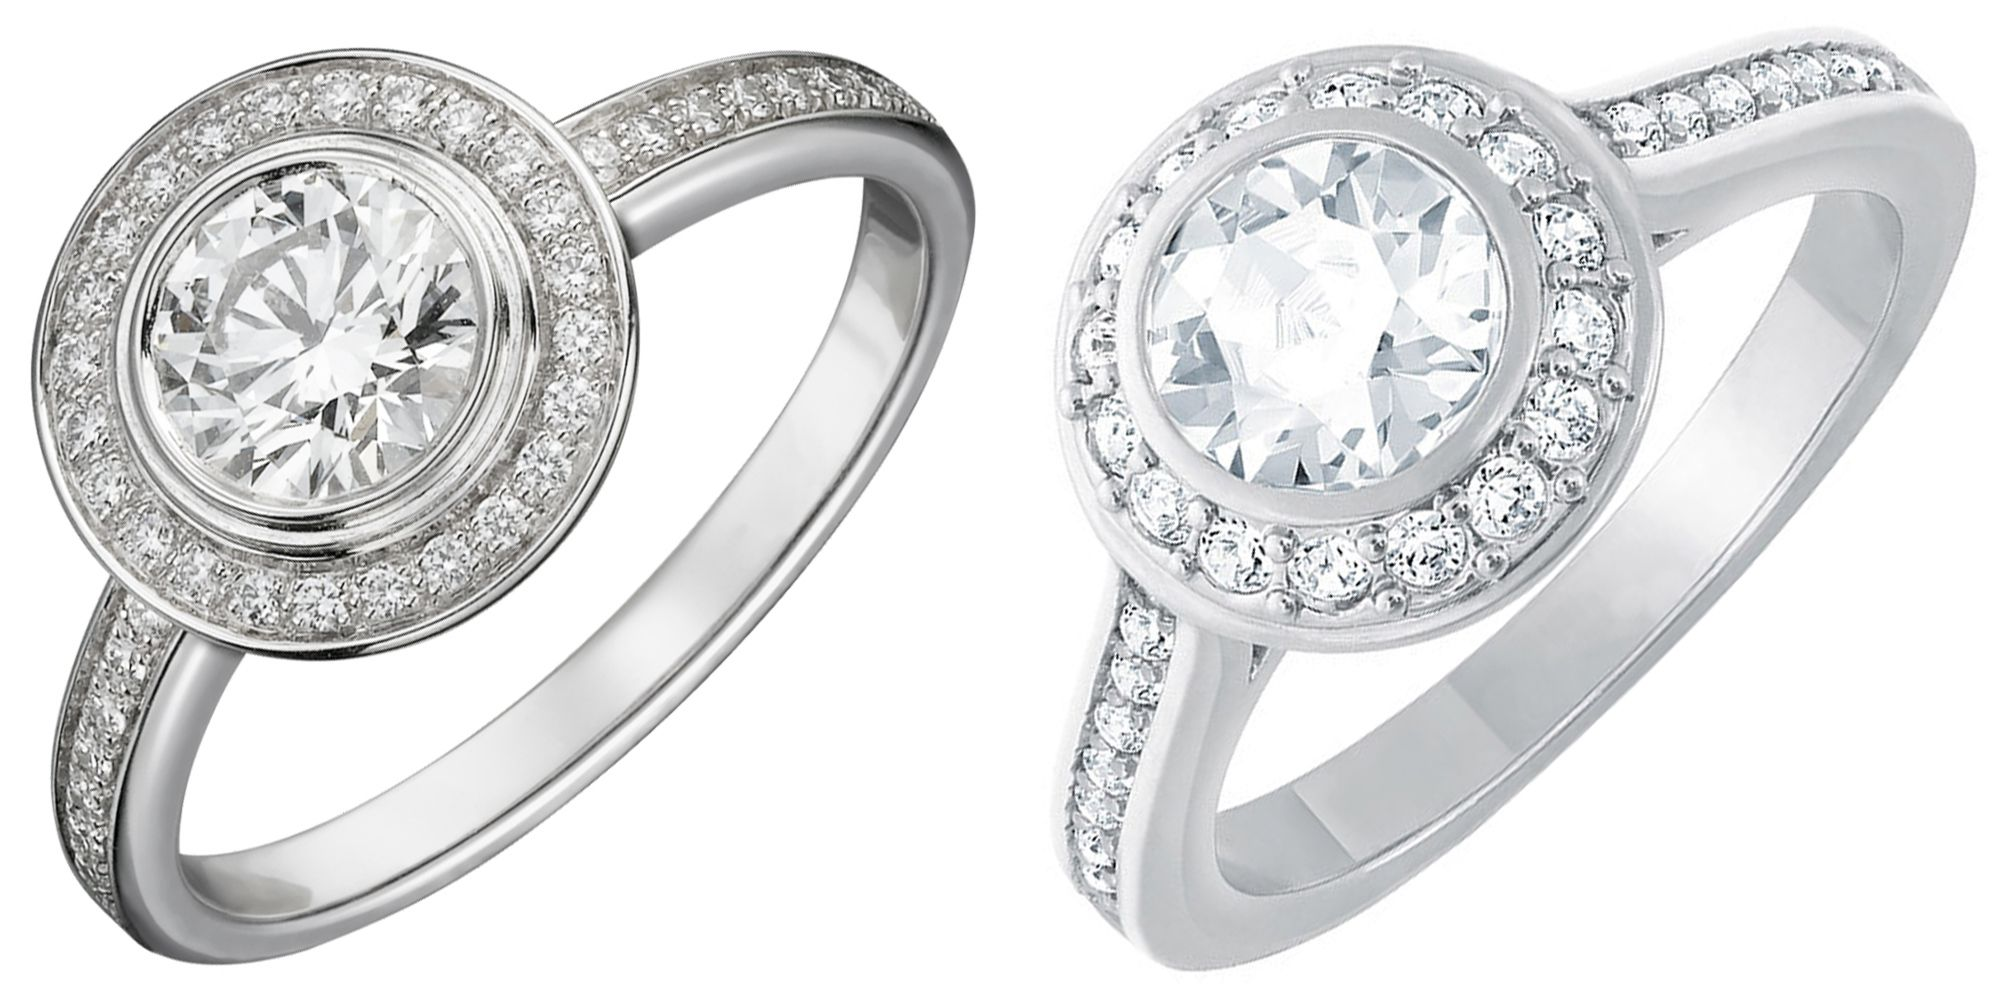 Quiz: Can You Tell The Difference Between A Cheap Engagement Ring And An  Expensive Engagement Ring?